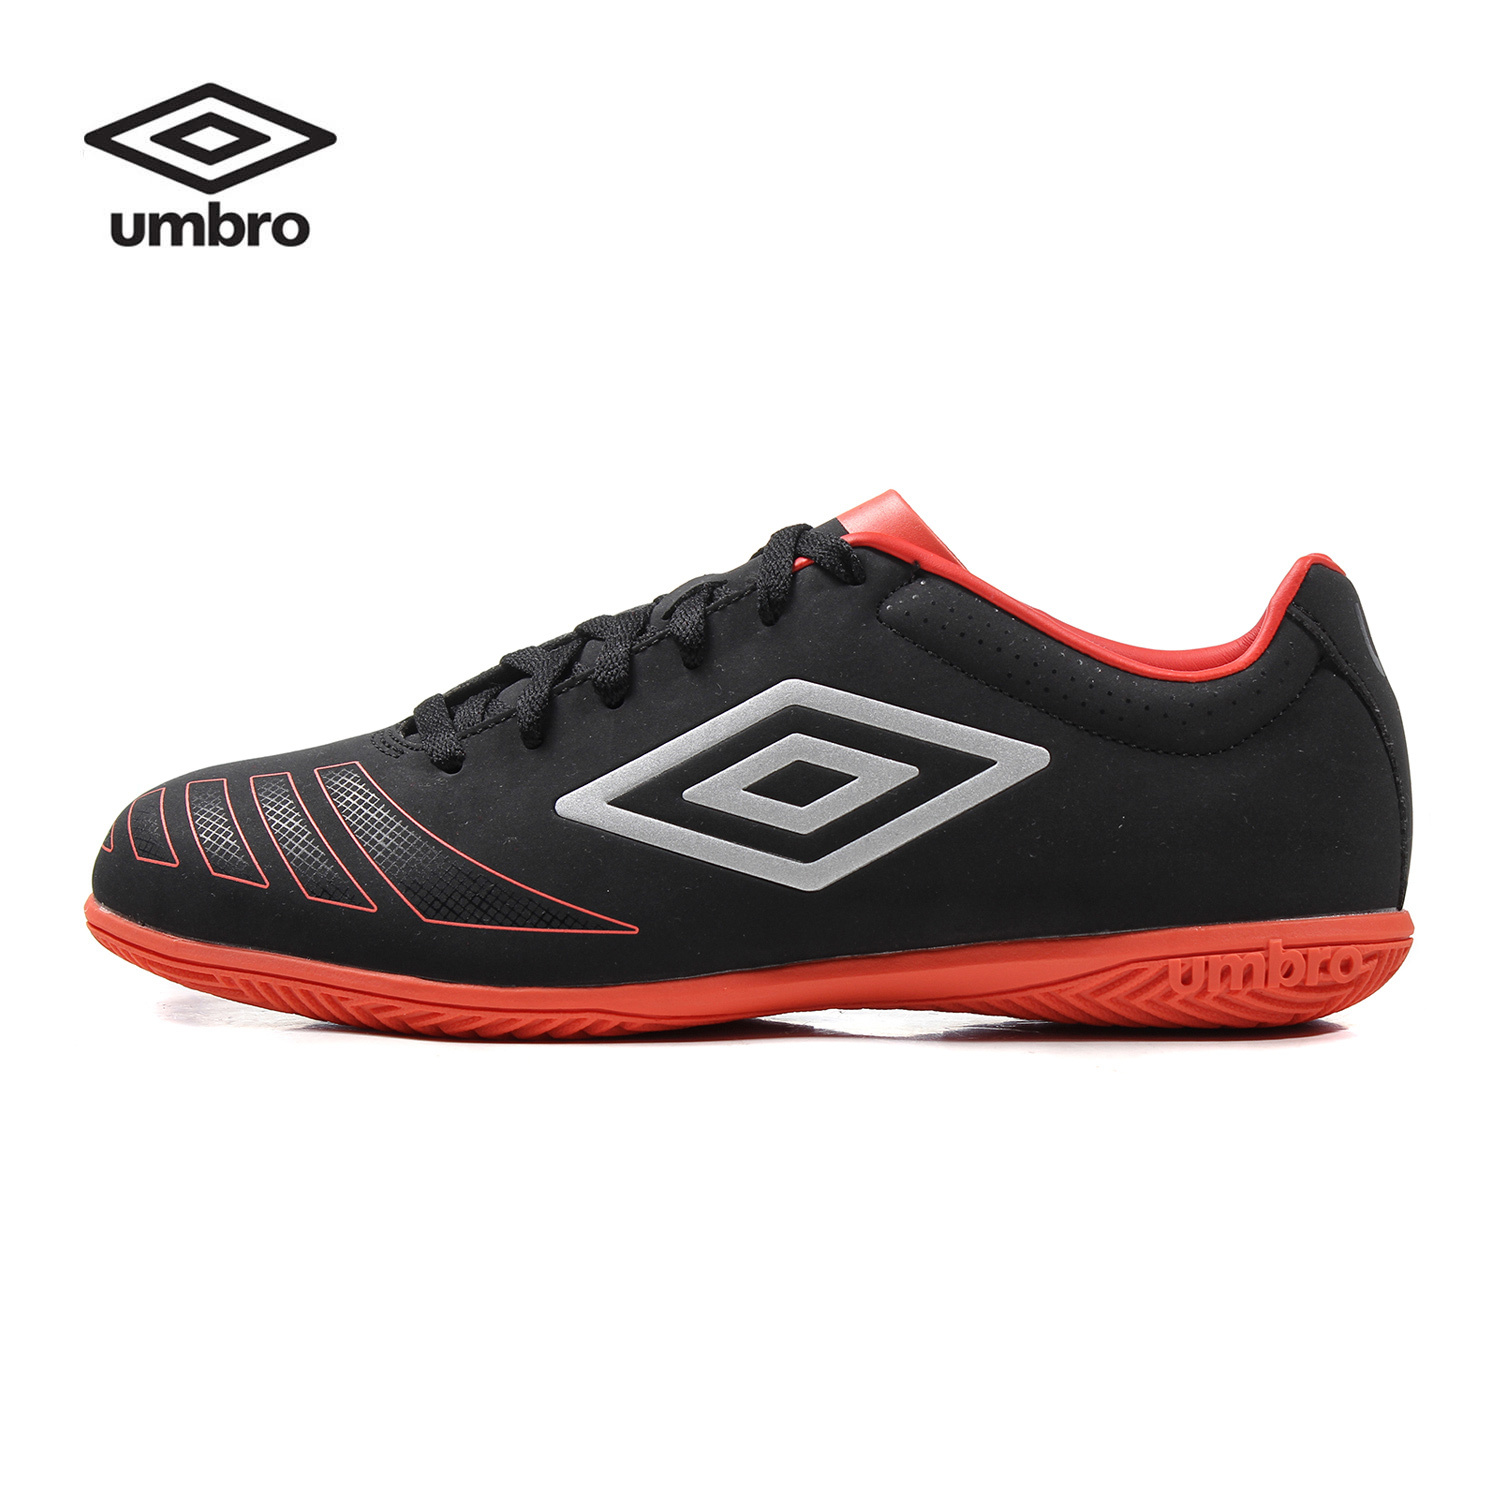 dd39d96d4 Umbro Football Shoes Men IT Non-Spikes Synthetic Leather Professional  Training Soccer Shoes Football Boots Ucb90107